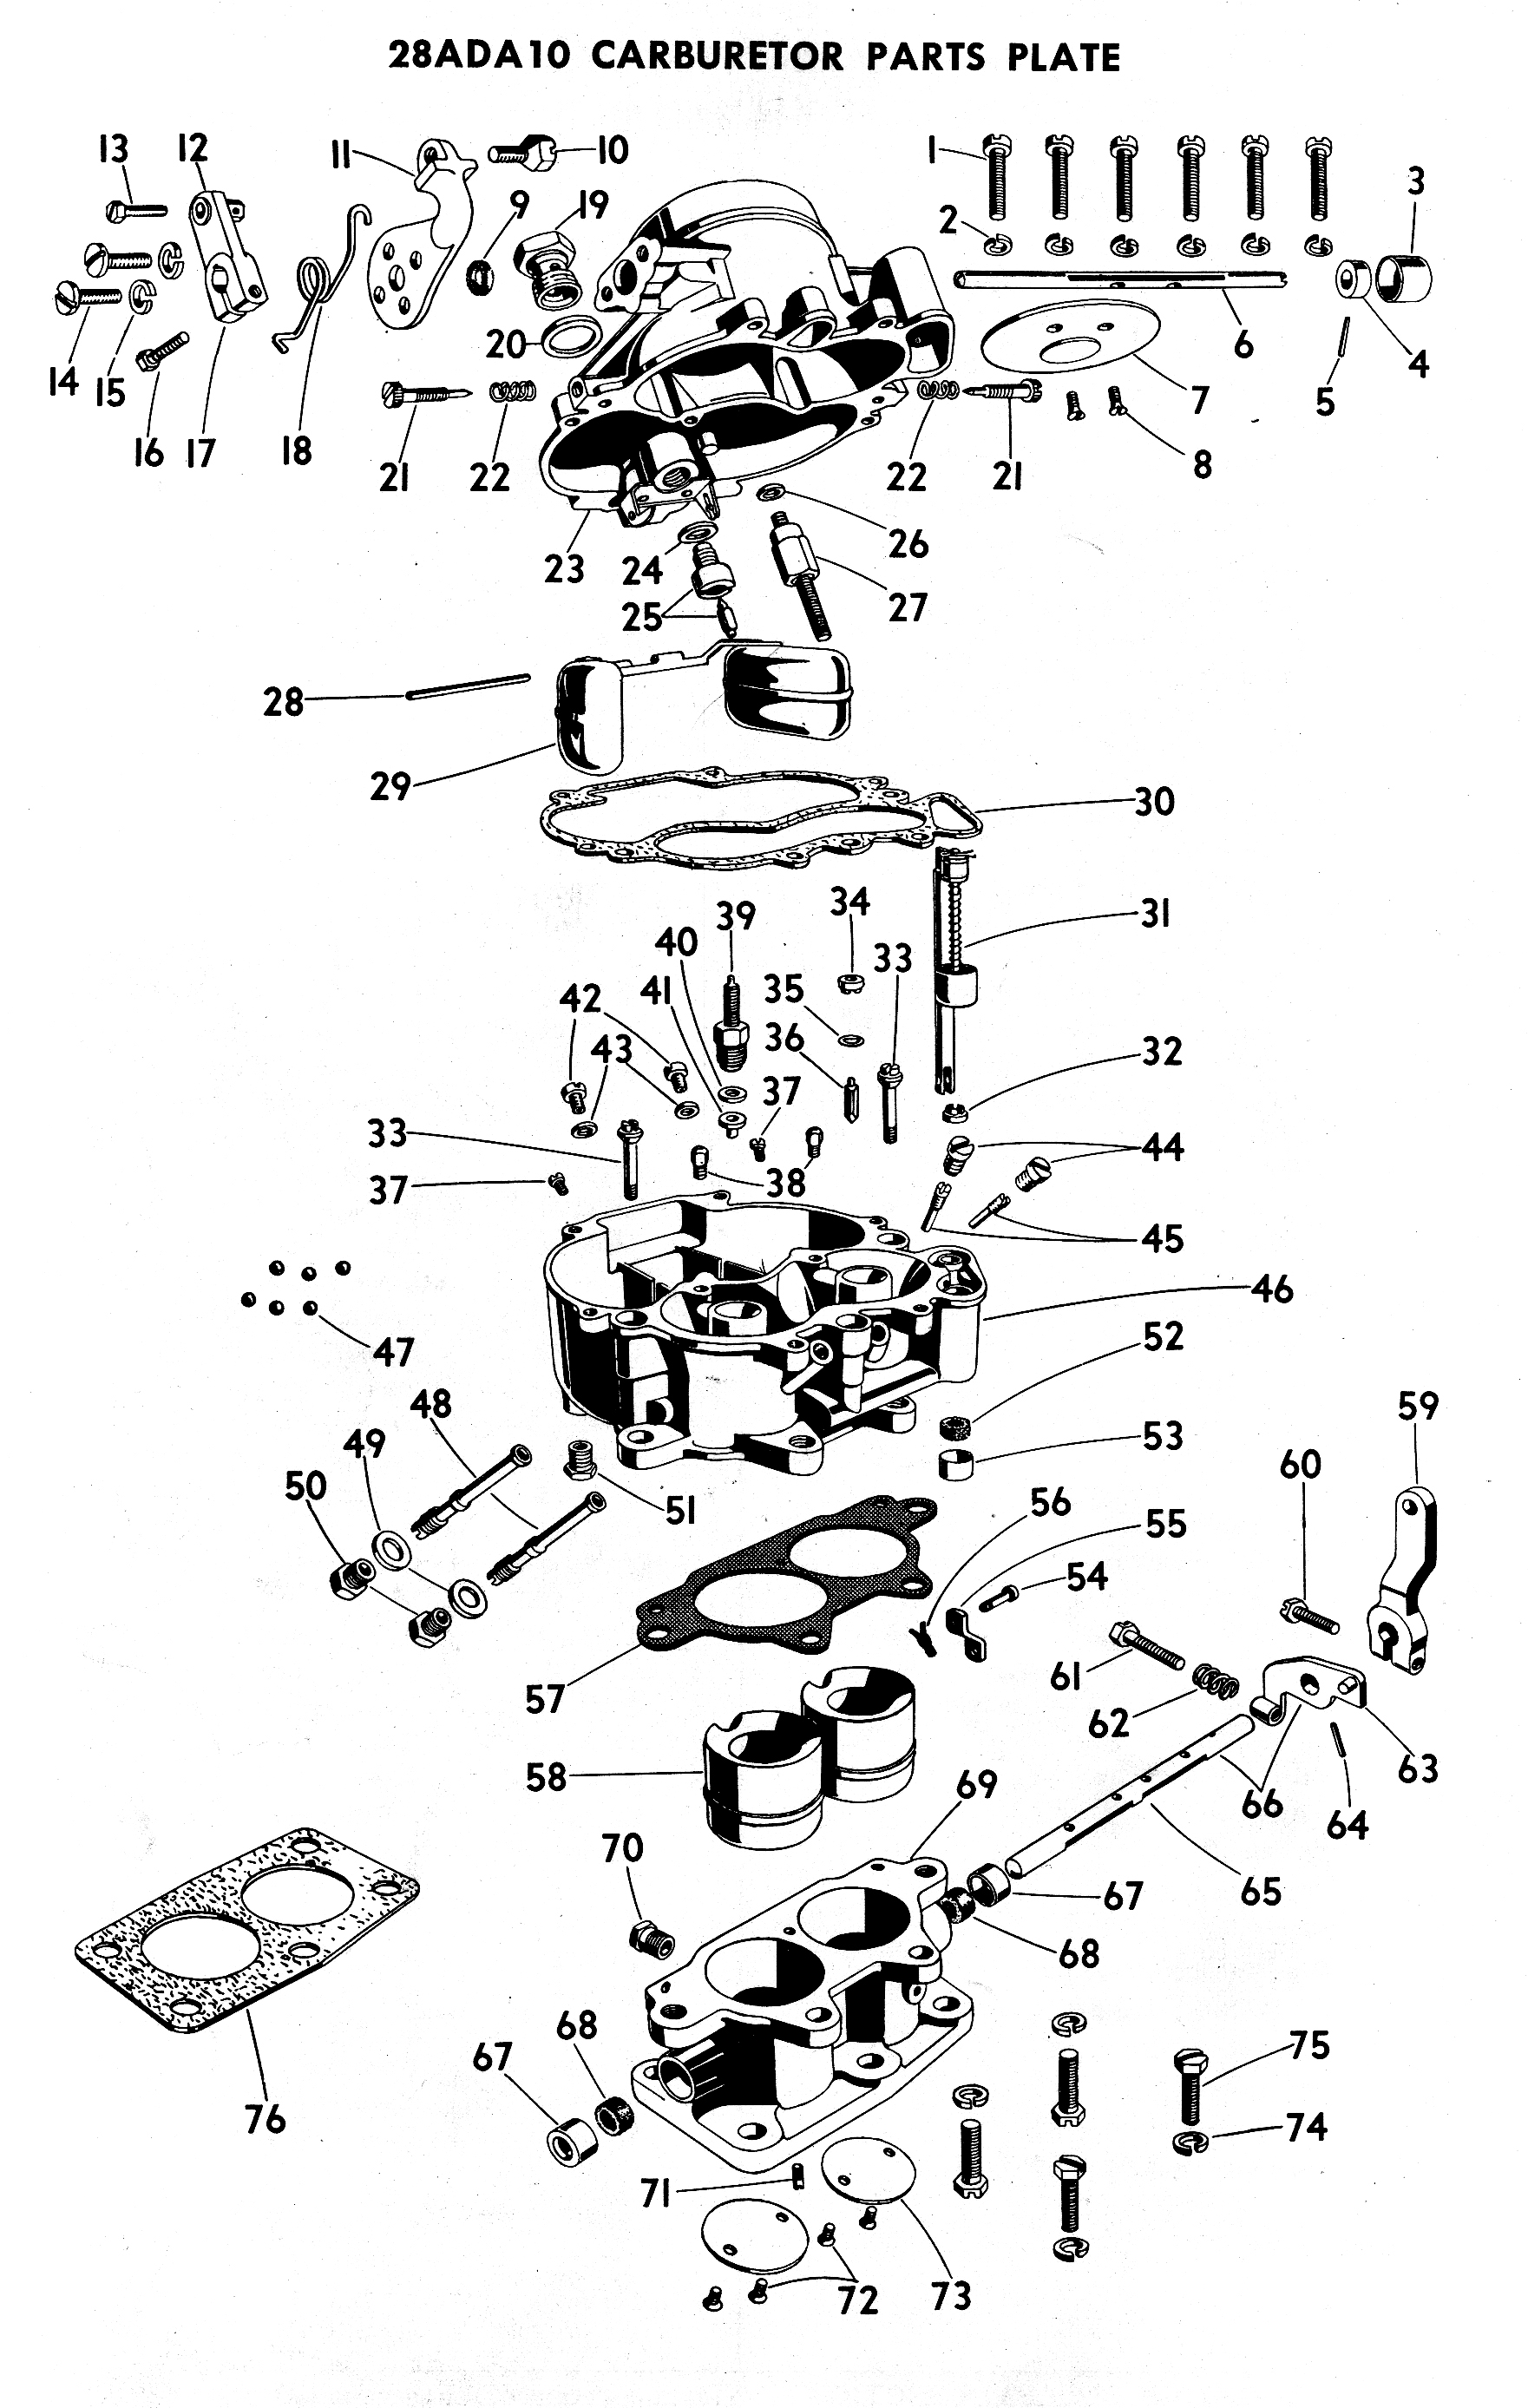 Zenith 13692 Carburetor Kit Float And Manual Parts Diagram On Model A 28ada Exploded View